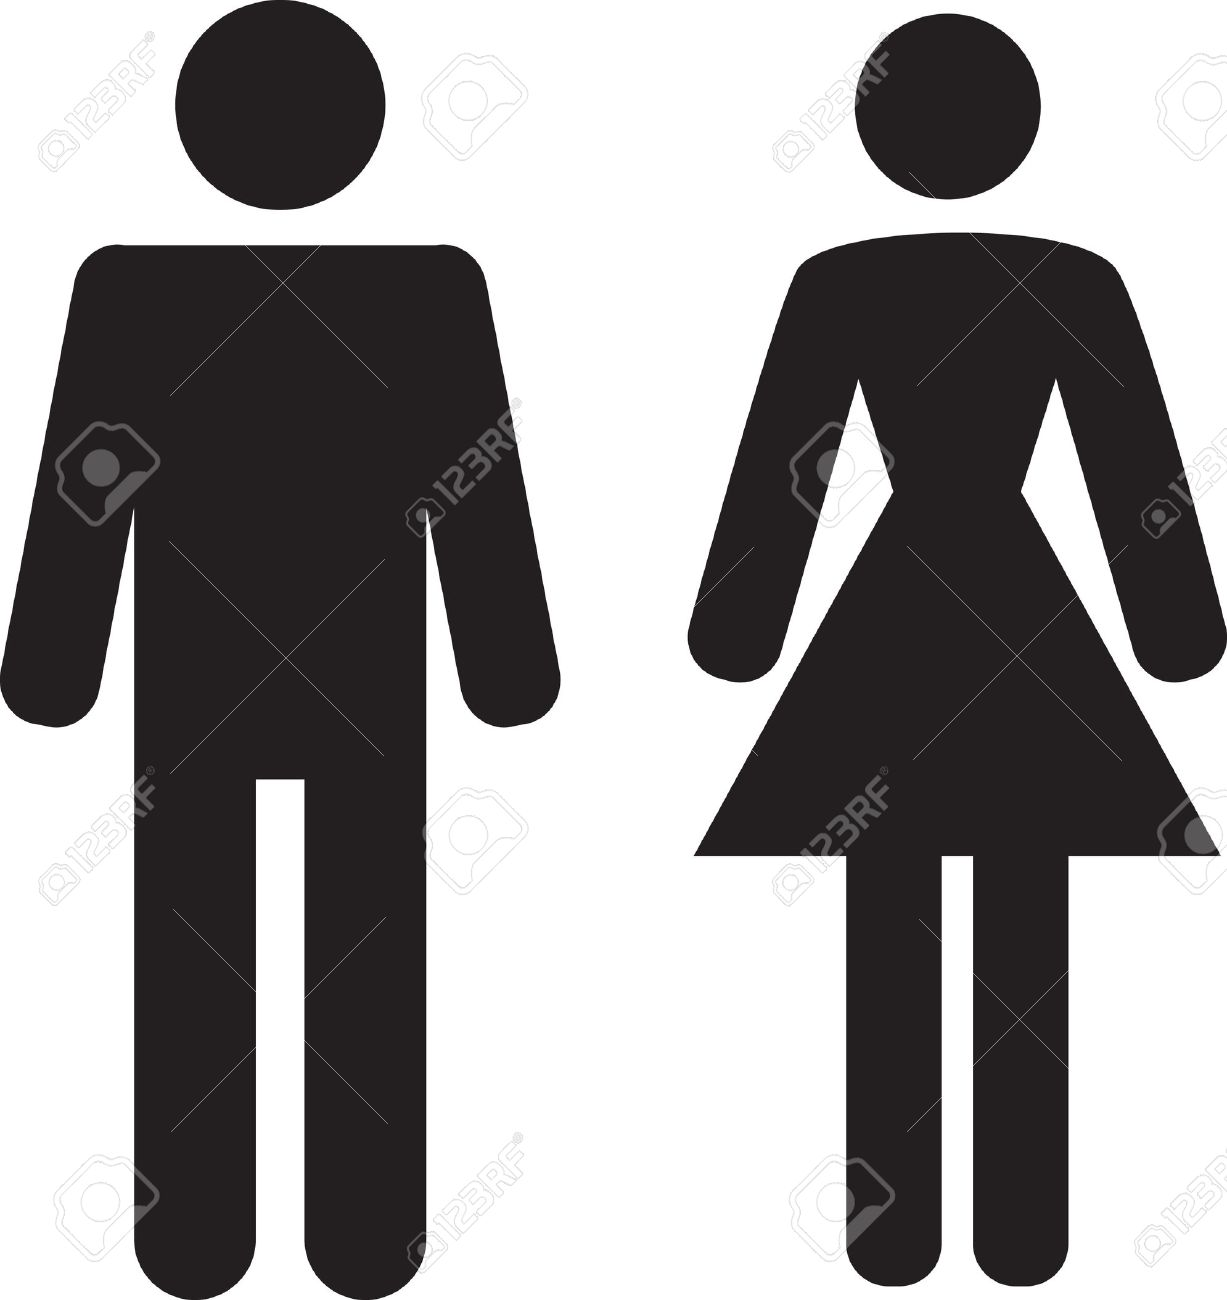 Girls bathroom sign outline - Bathroom Sign Man And Woman Icon On White Background